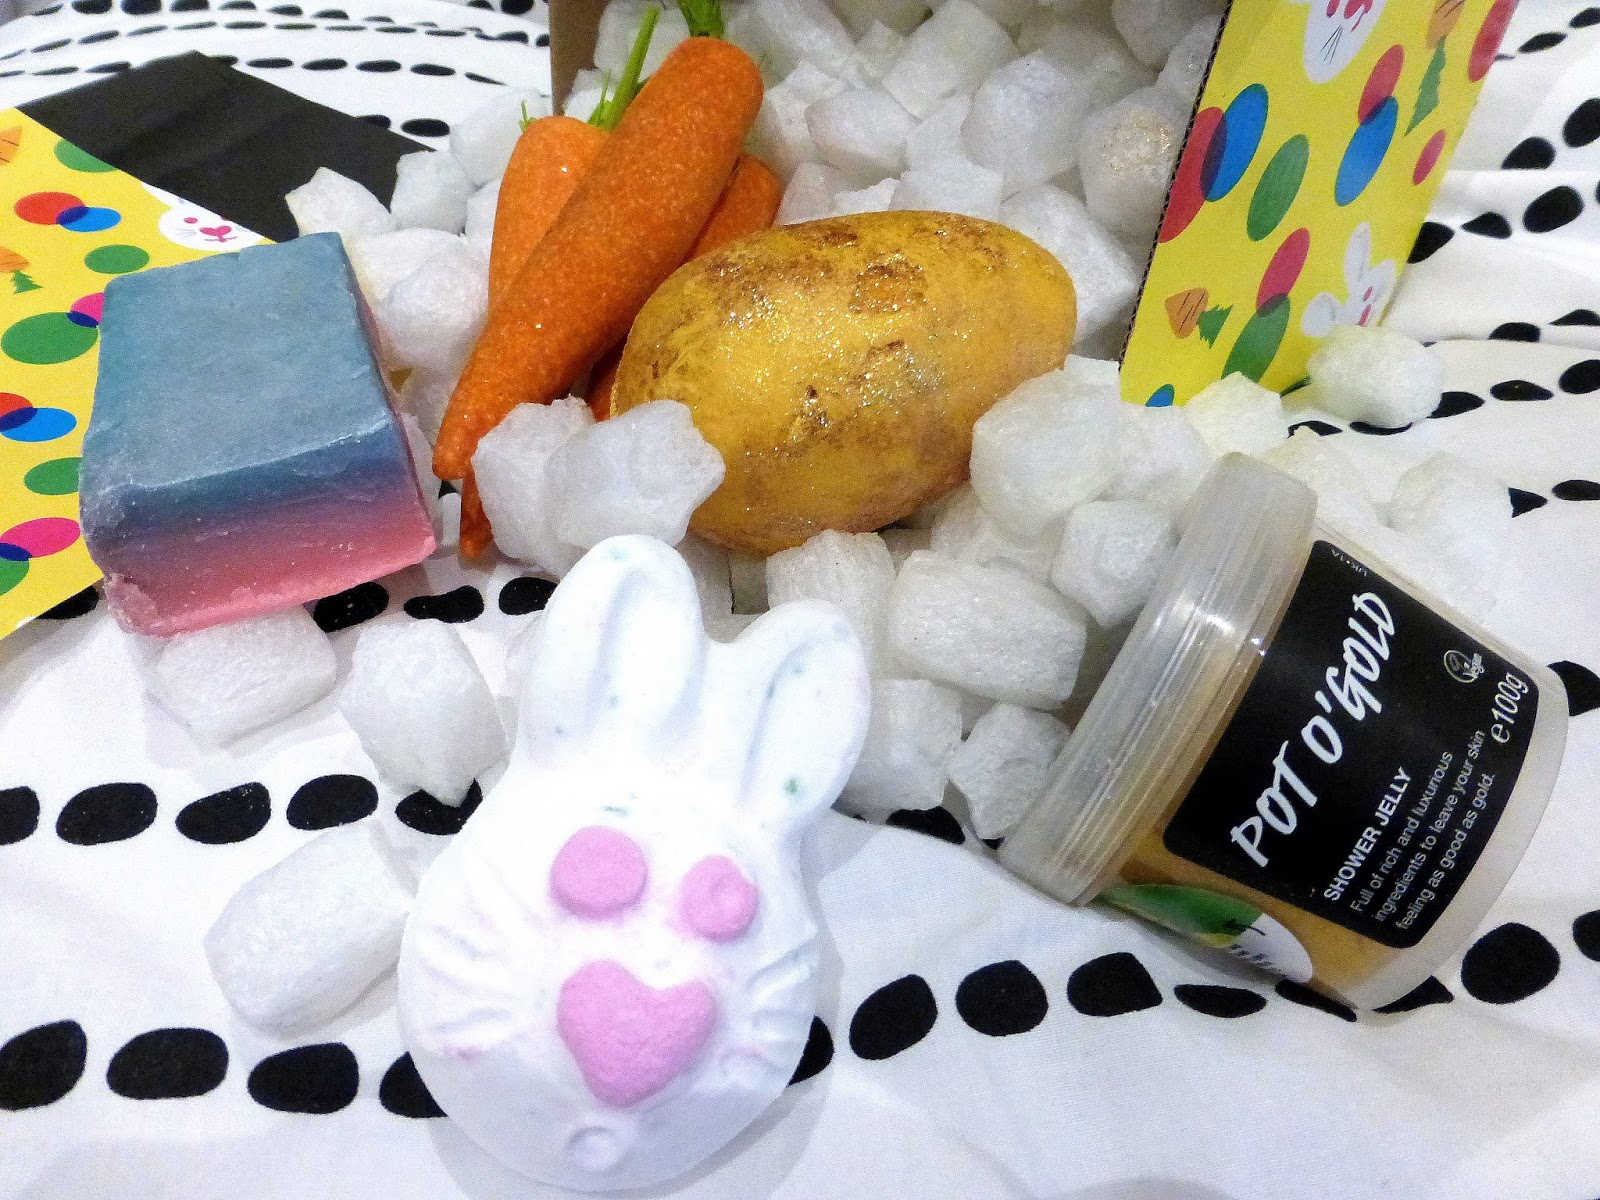 Lush Cosmetics Easter 2015